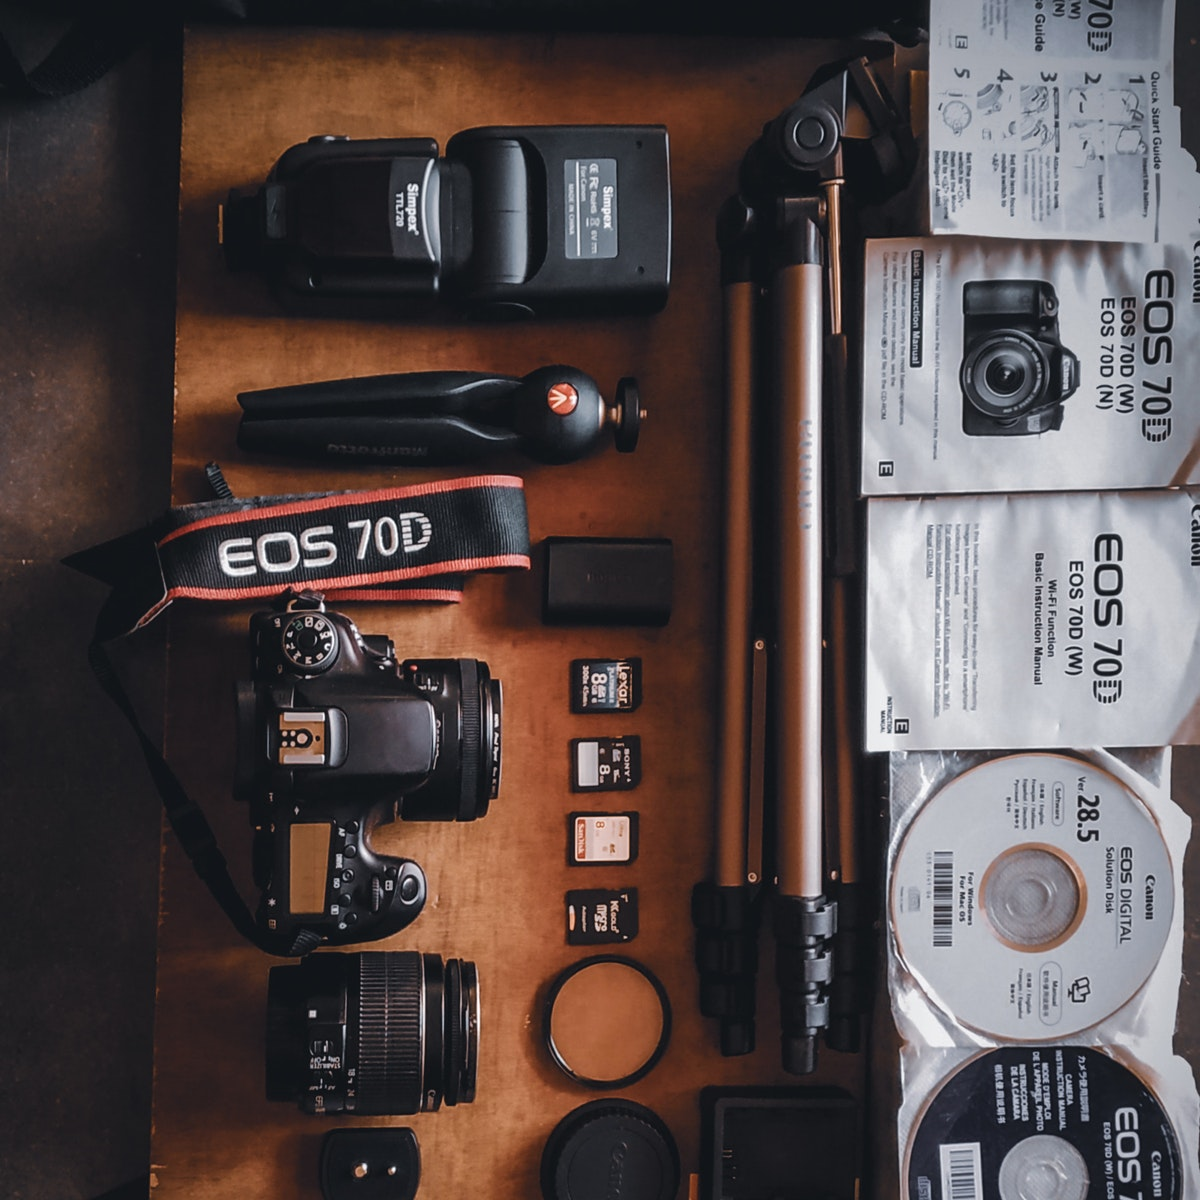 Camera Layout with Different Camera Equipment Like SD Cards, CDs, Lenses and a Tripod